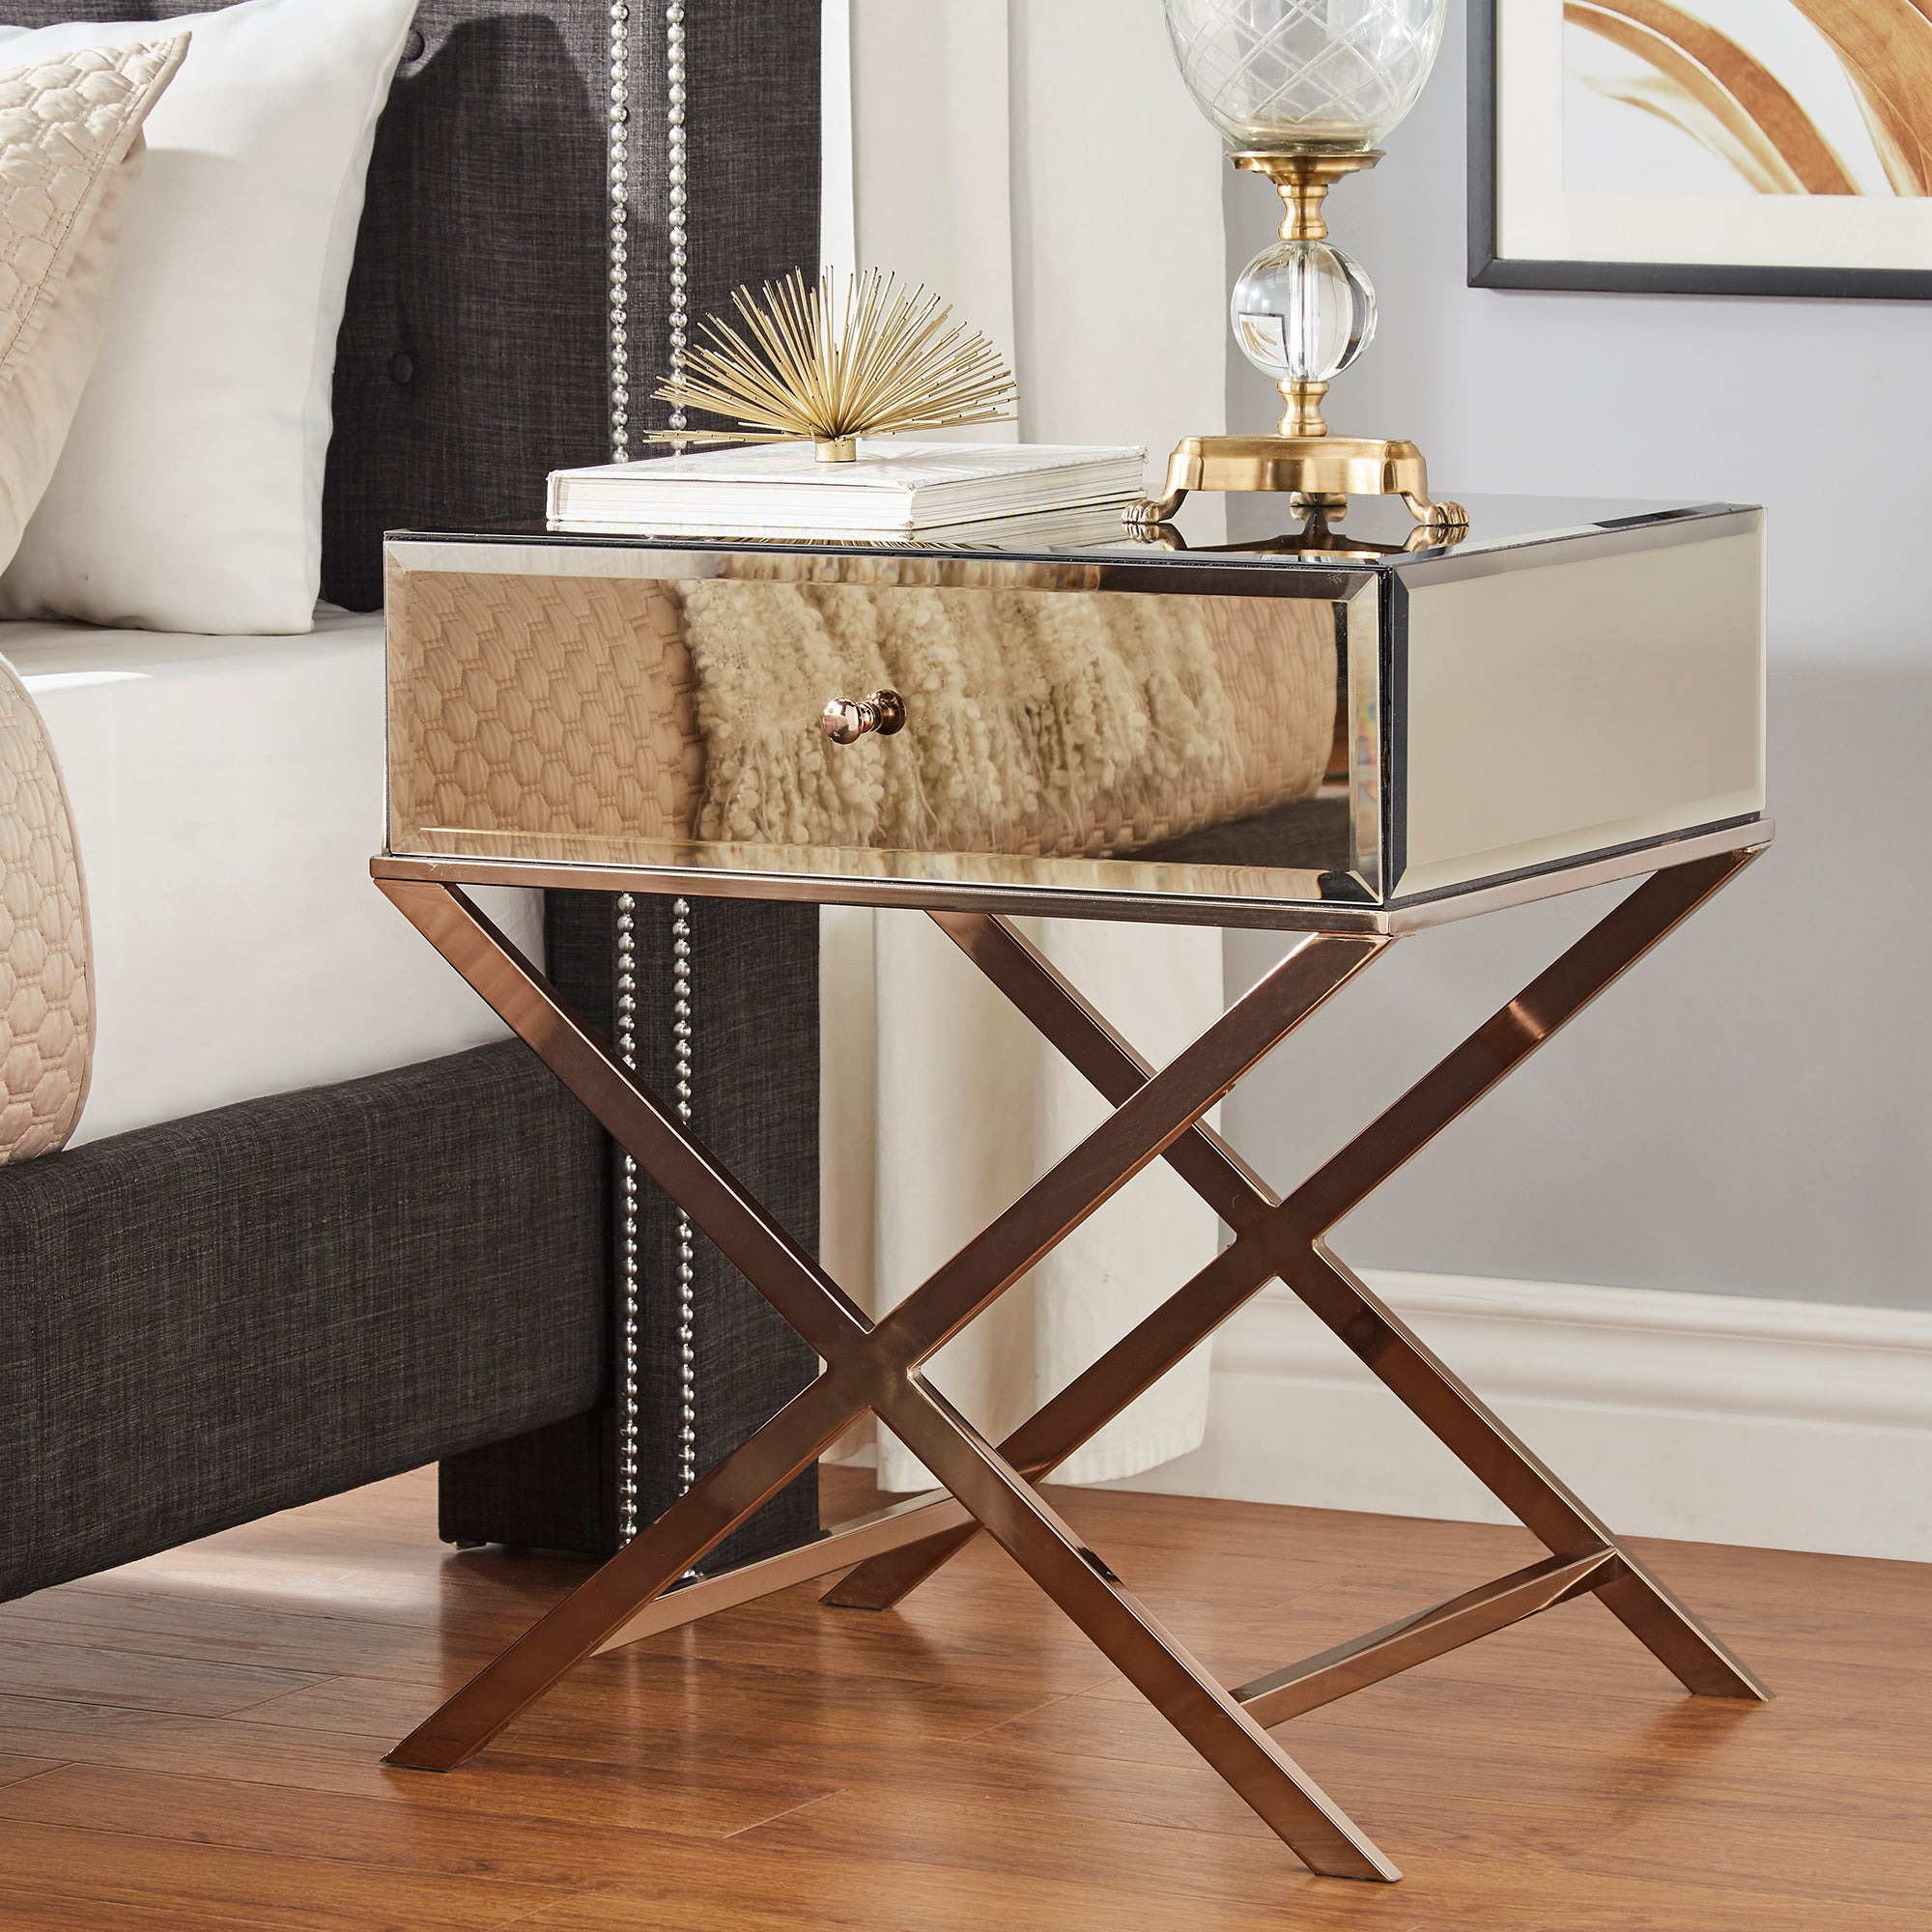 X-Base Mirrored Accent Campaign Table - Champagne Gold